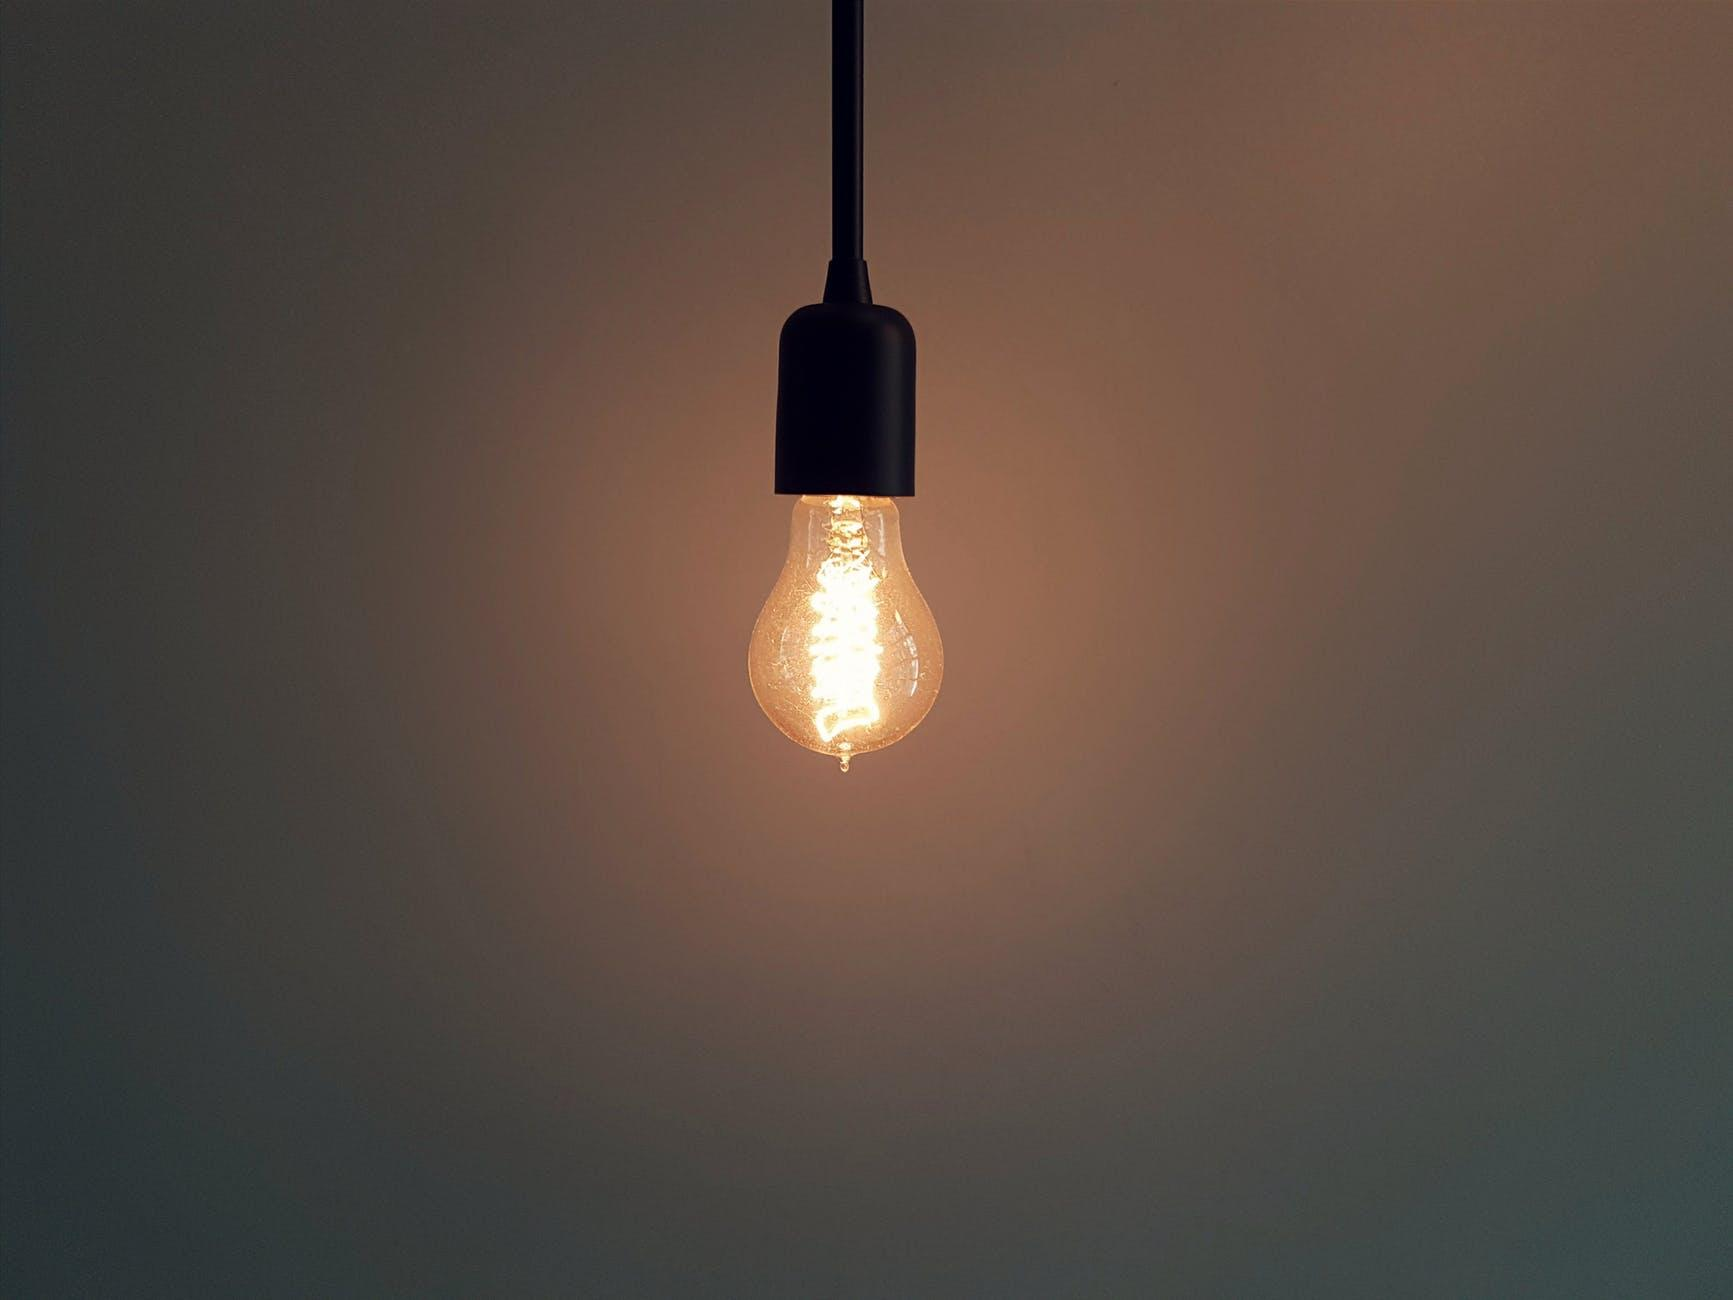 Eskom: No load shedding anticipated during the weekend